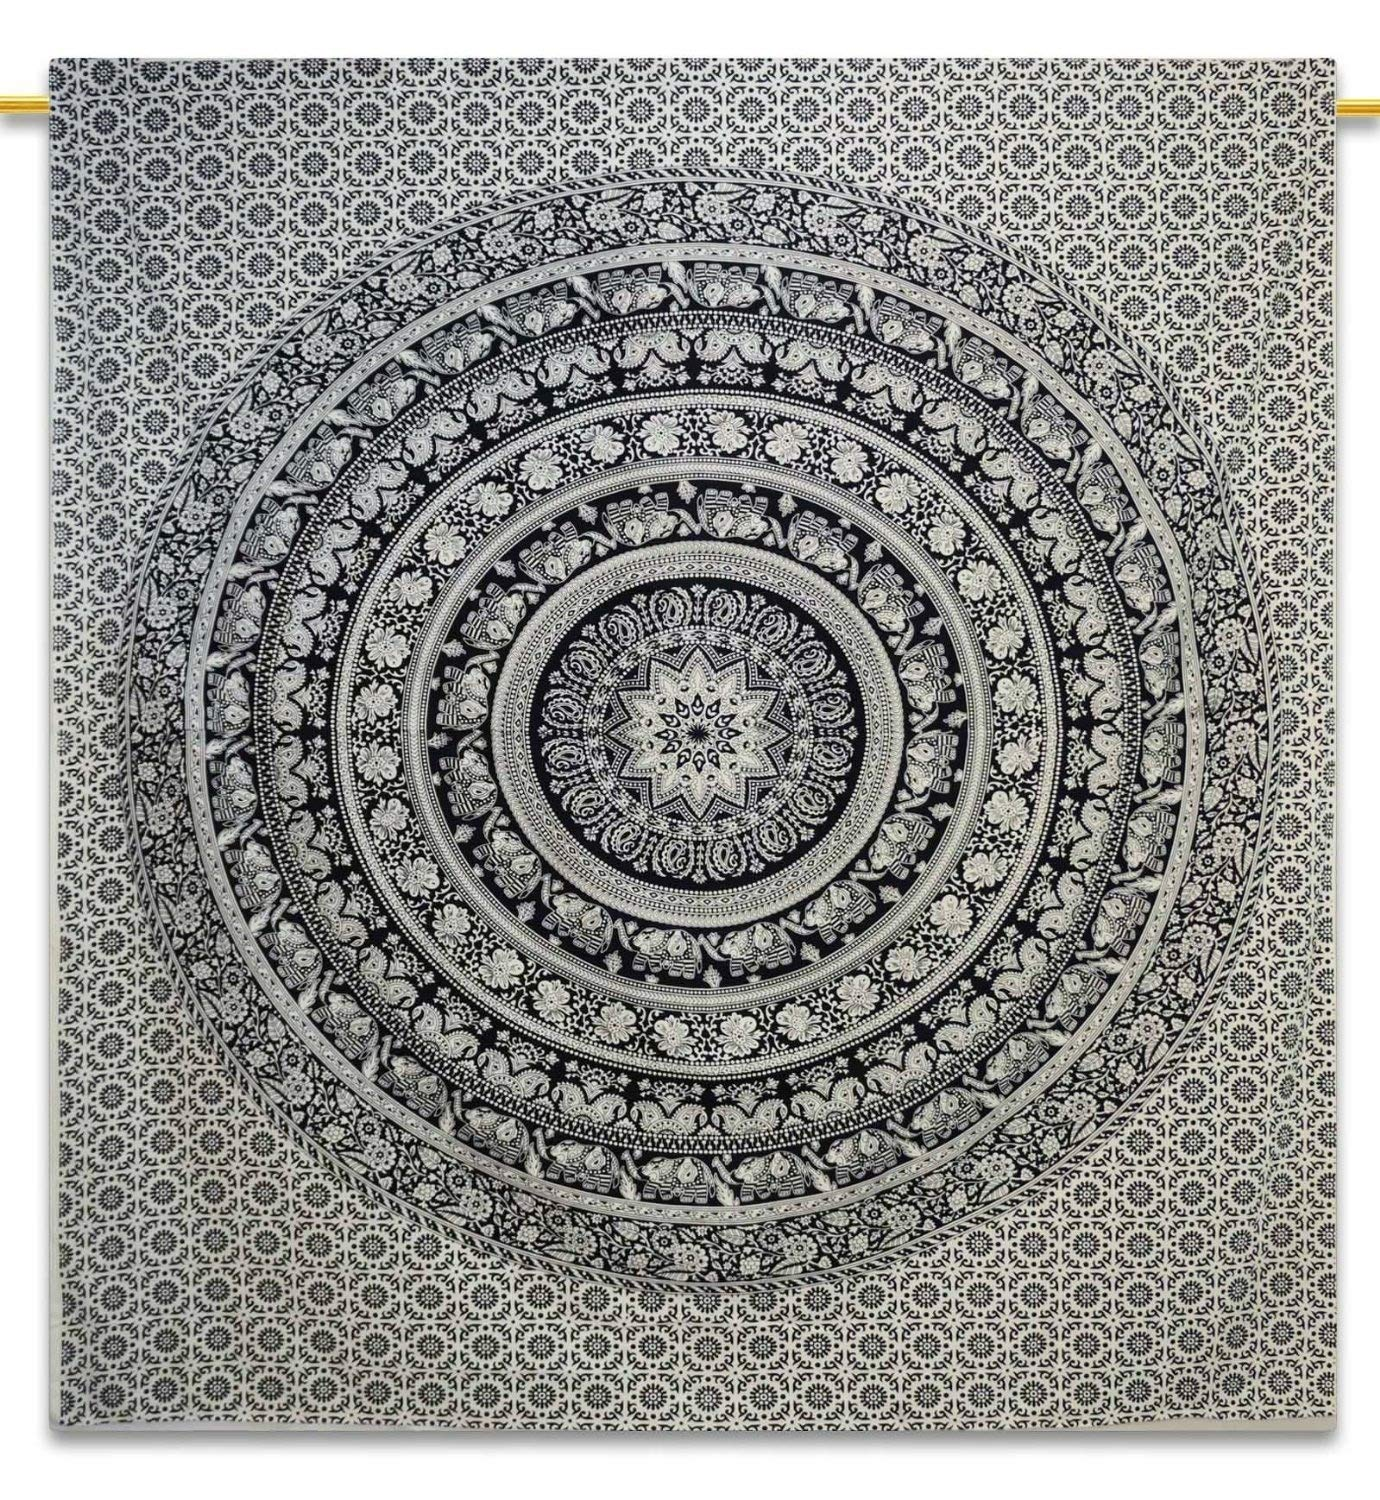 Craftozone Black and White Bohemian Mandala tapestry Home Decor Double Hippie wall hanging Bedspread 92x82 inch